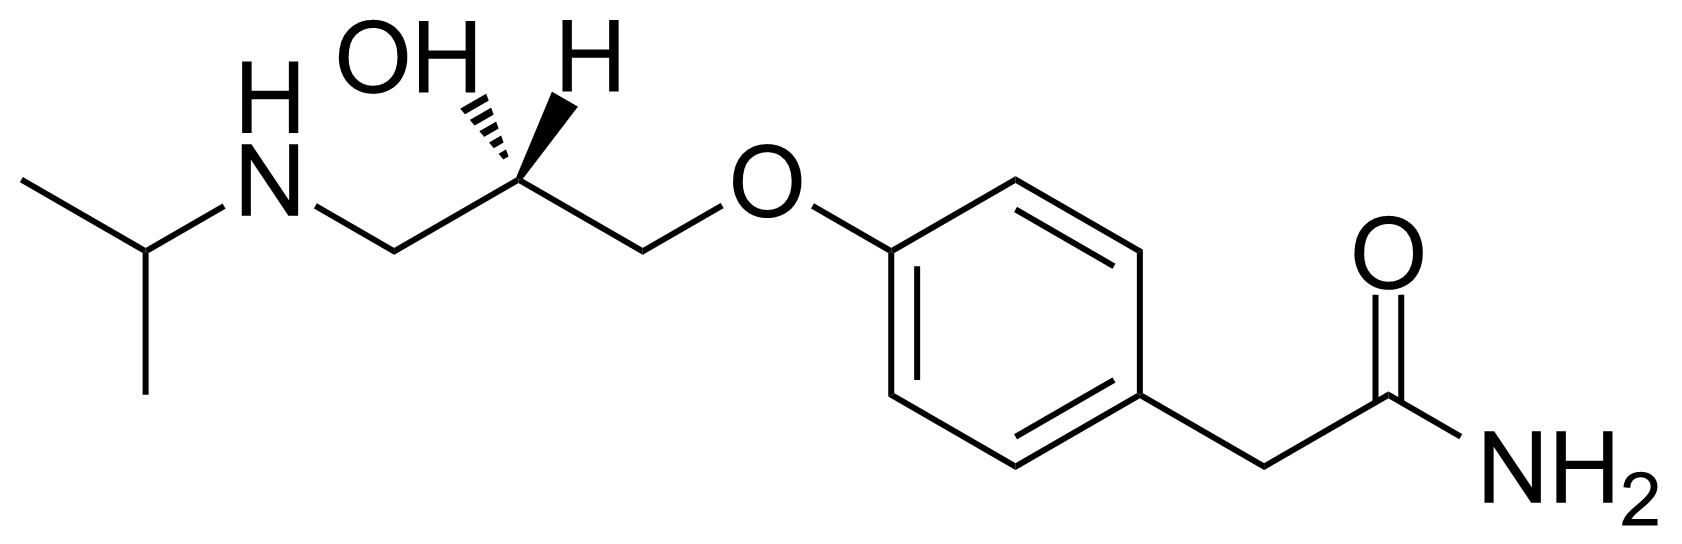 Structure of (S)-(-)-Atenolol